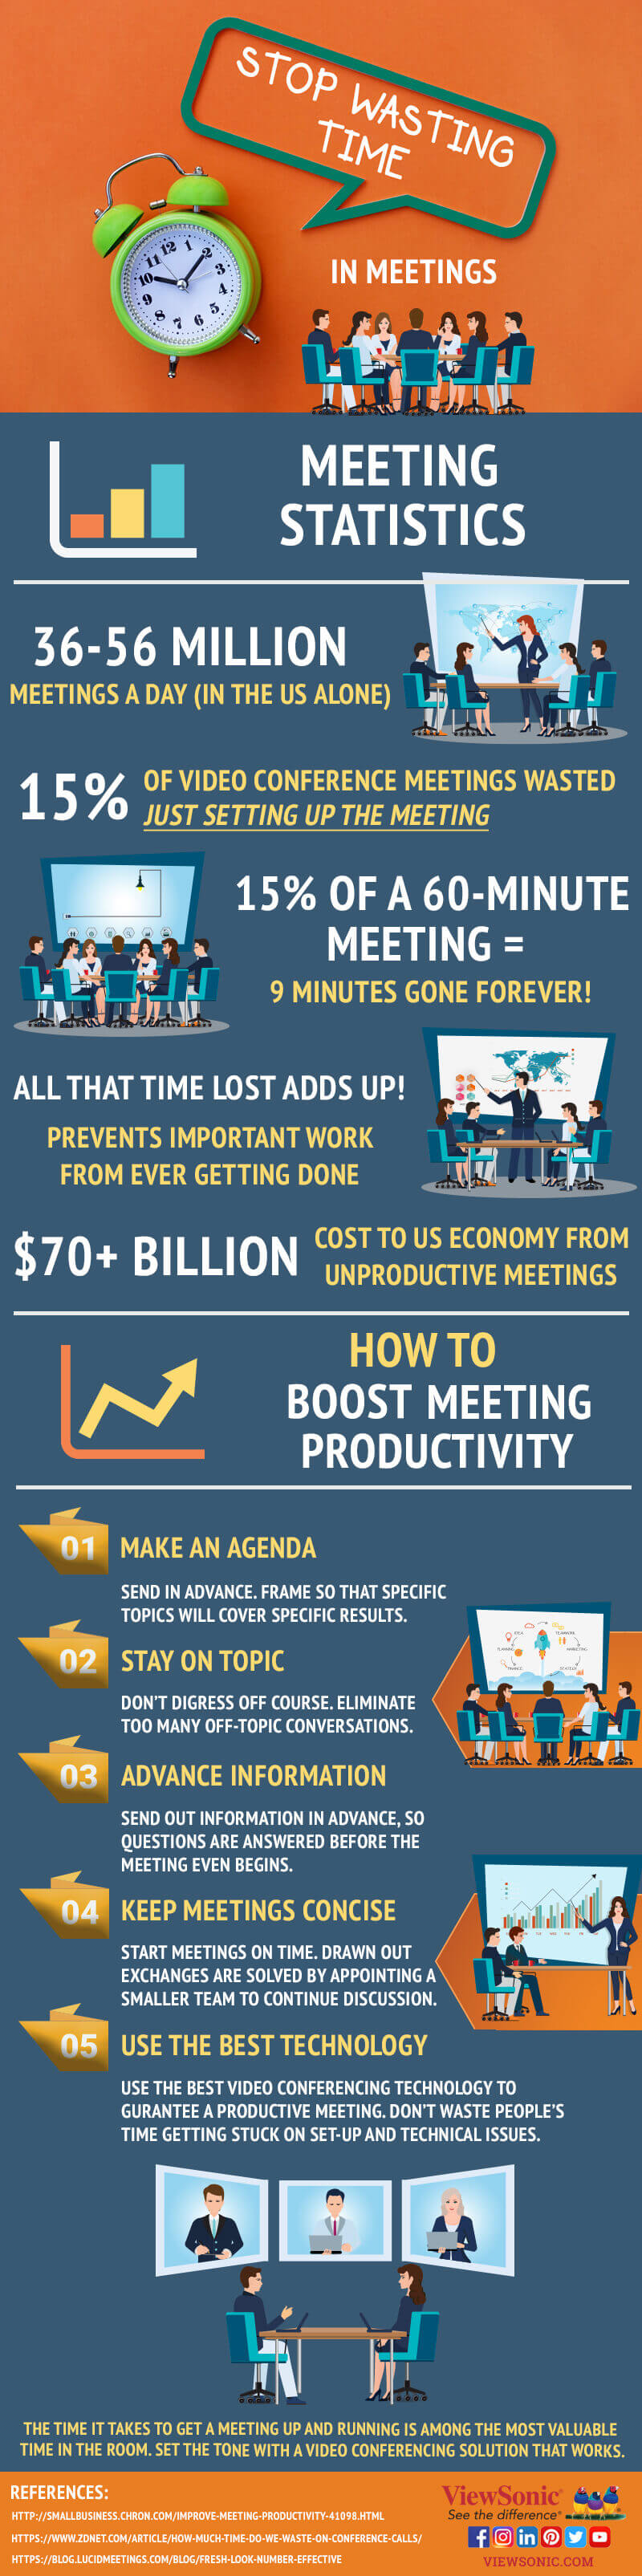 Wasting Time in Meetings What To Do